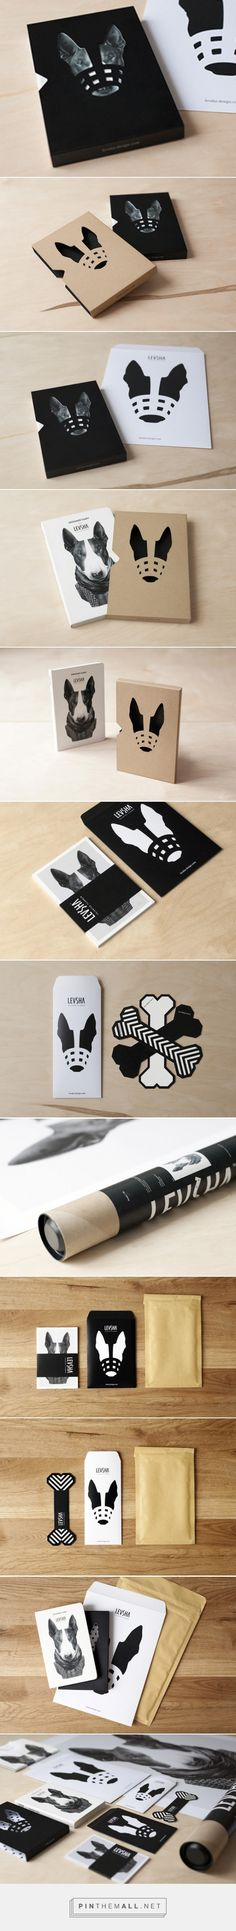 LEVSHA Designer Diary curated by Packaging Diva PD. This is a really cute packaging design exercise PD